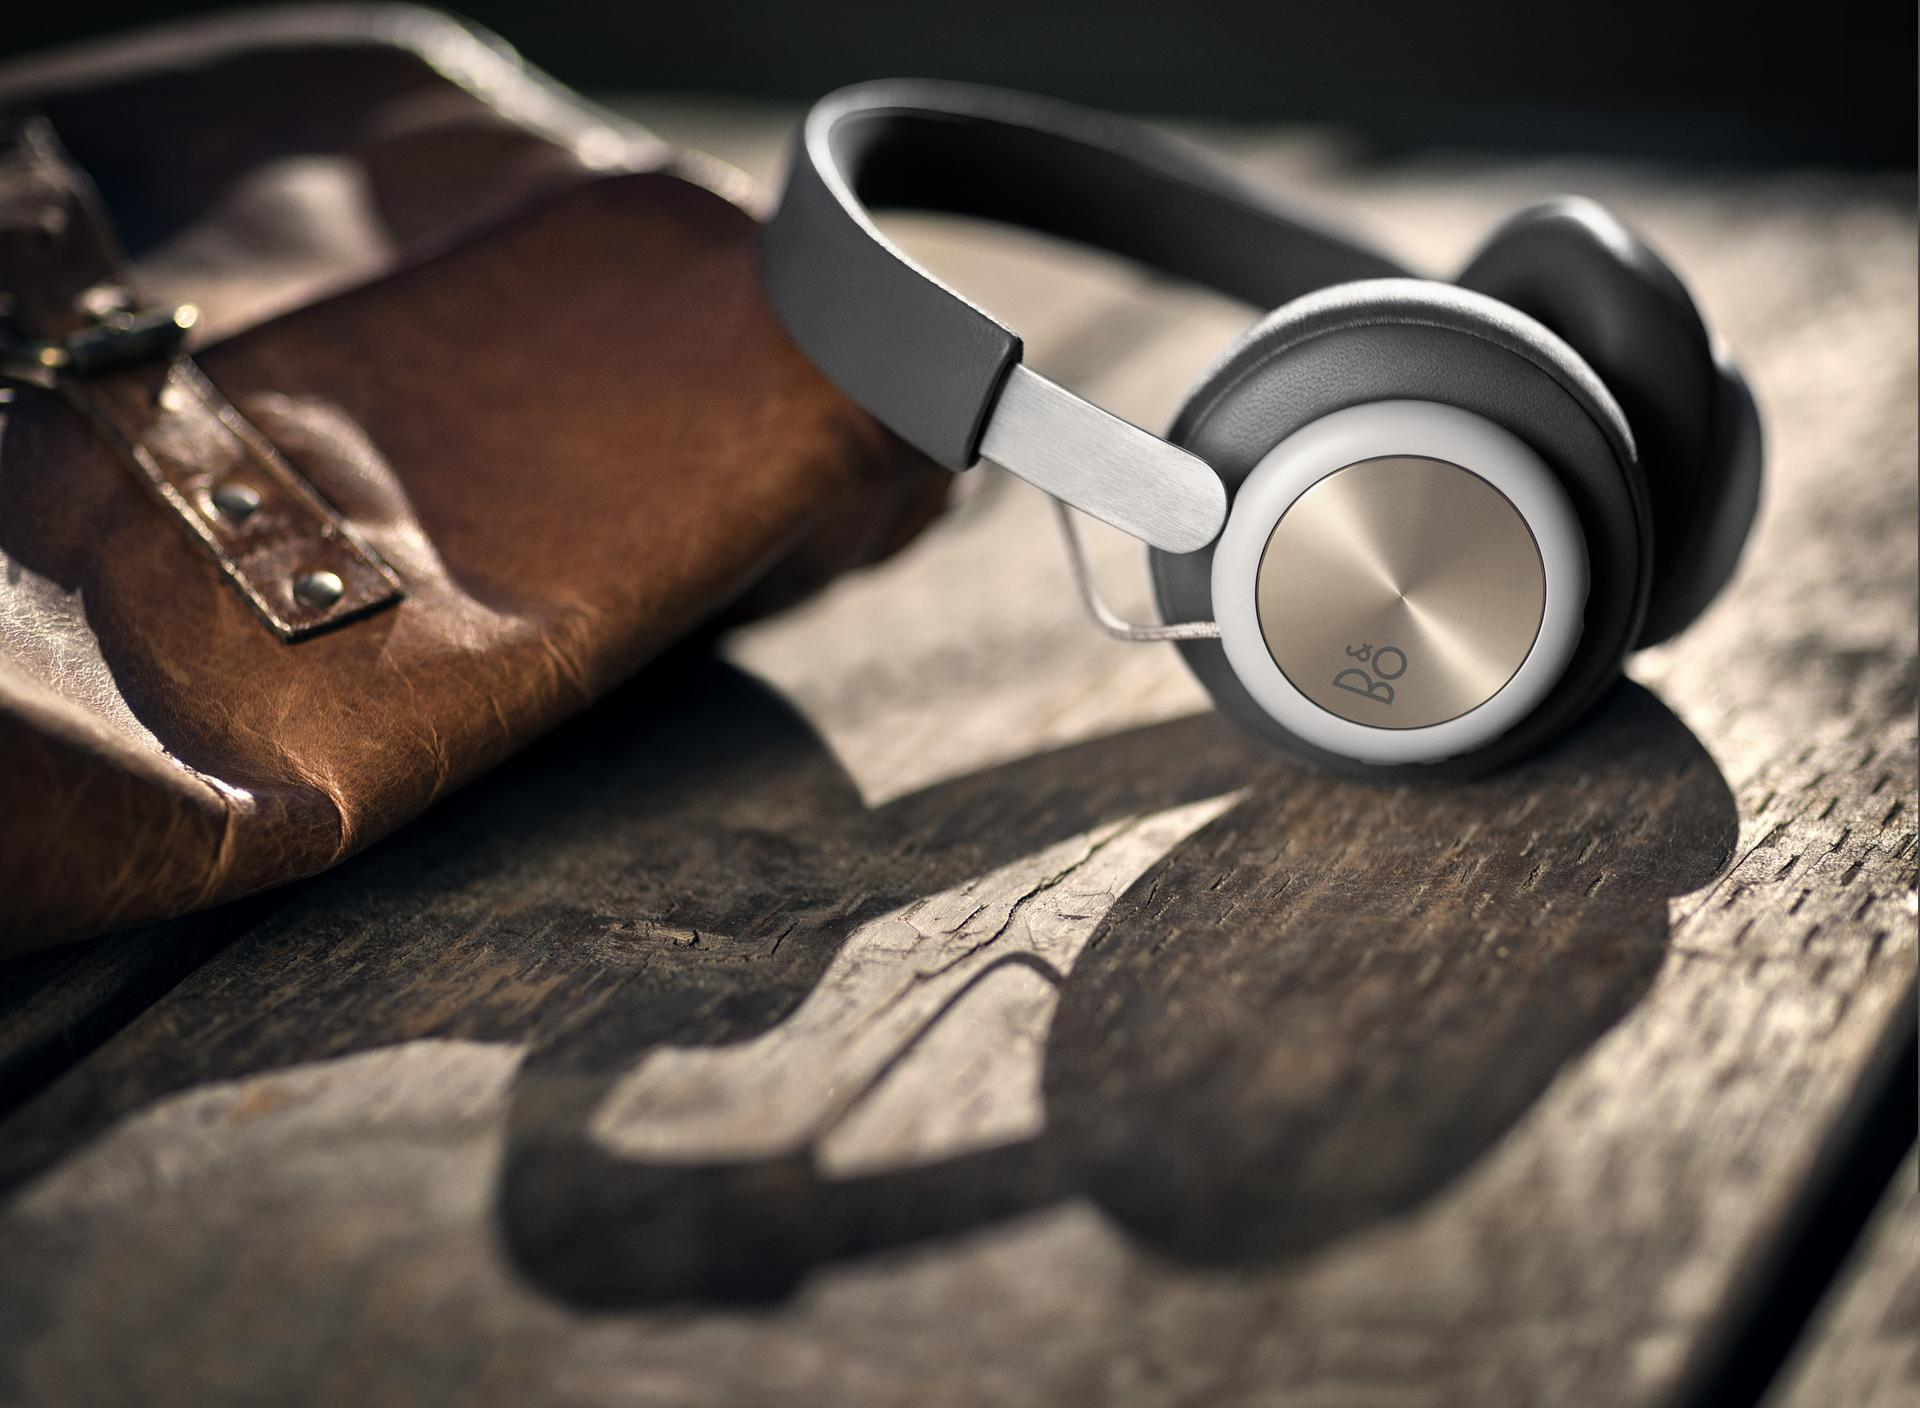 Beoplay H4 next to bag